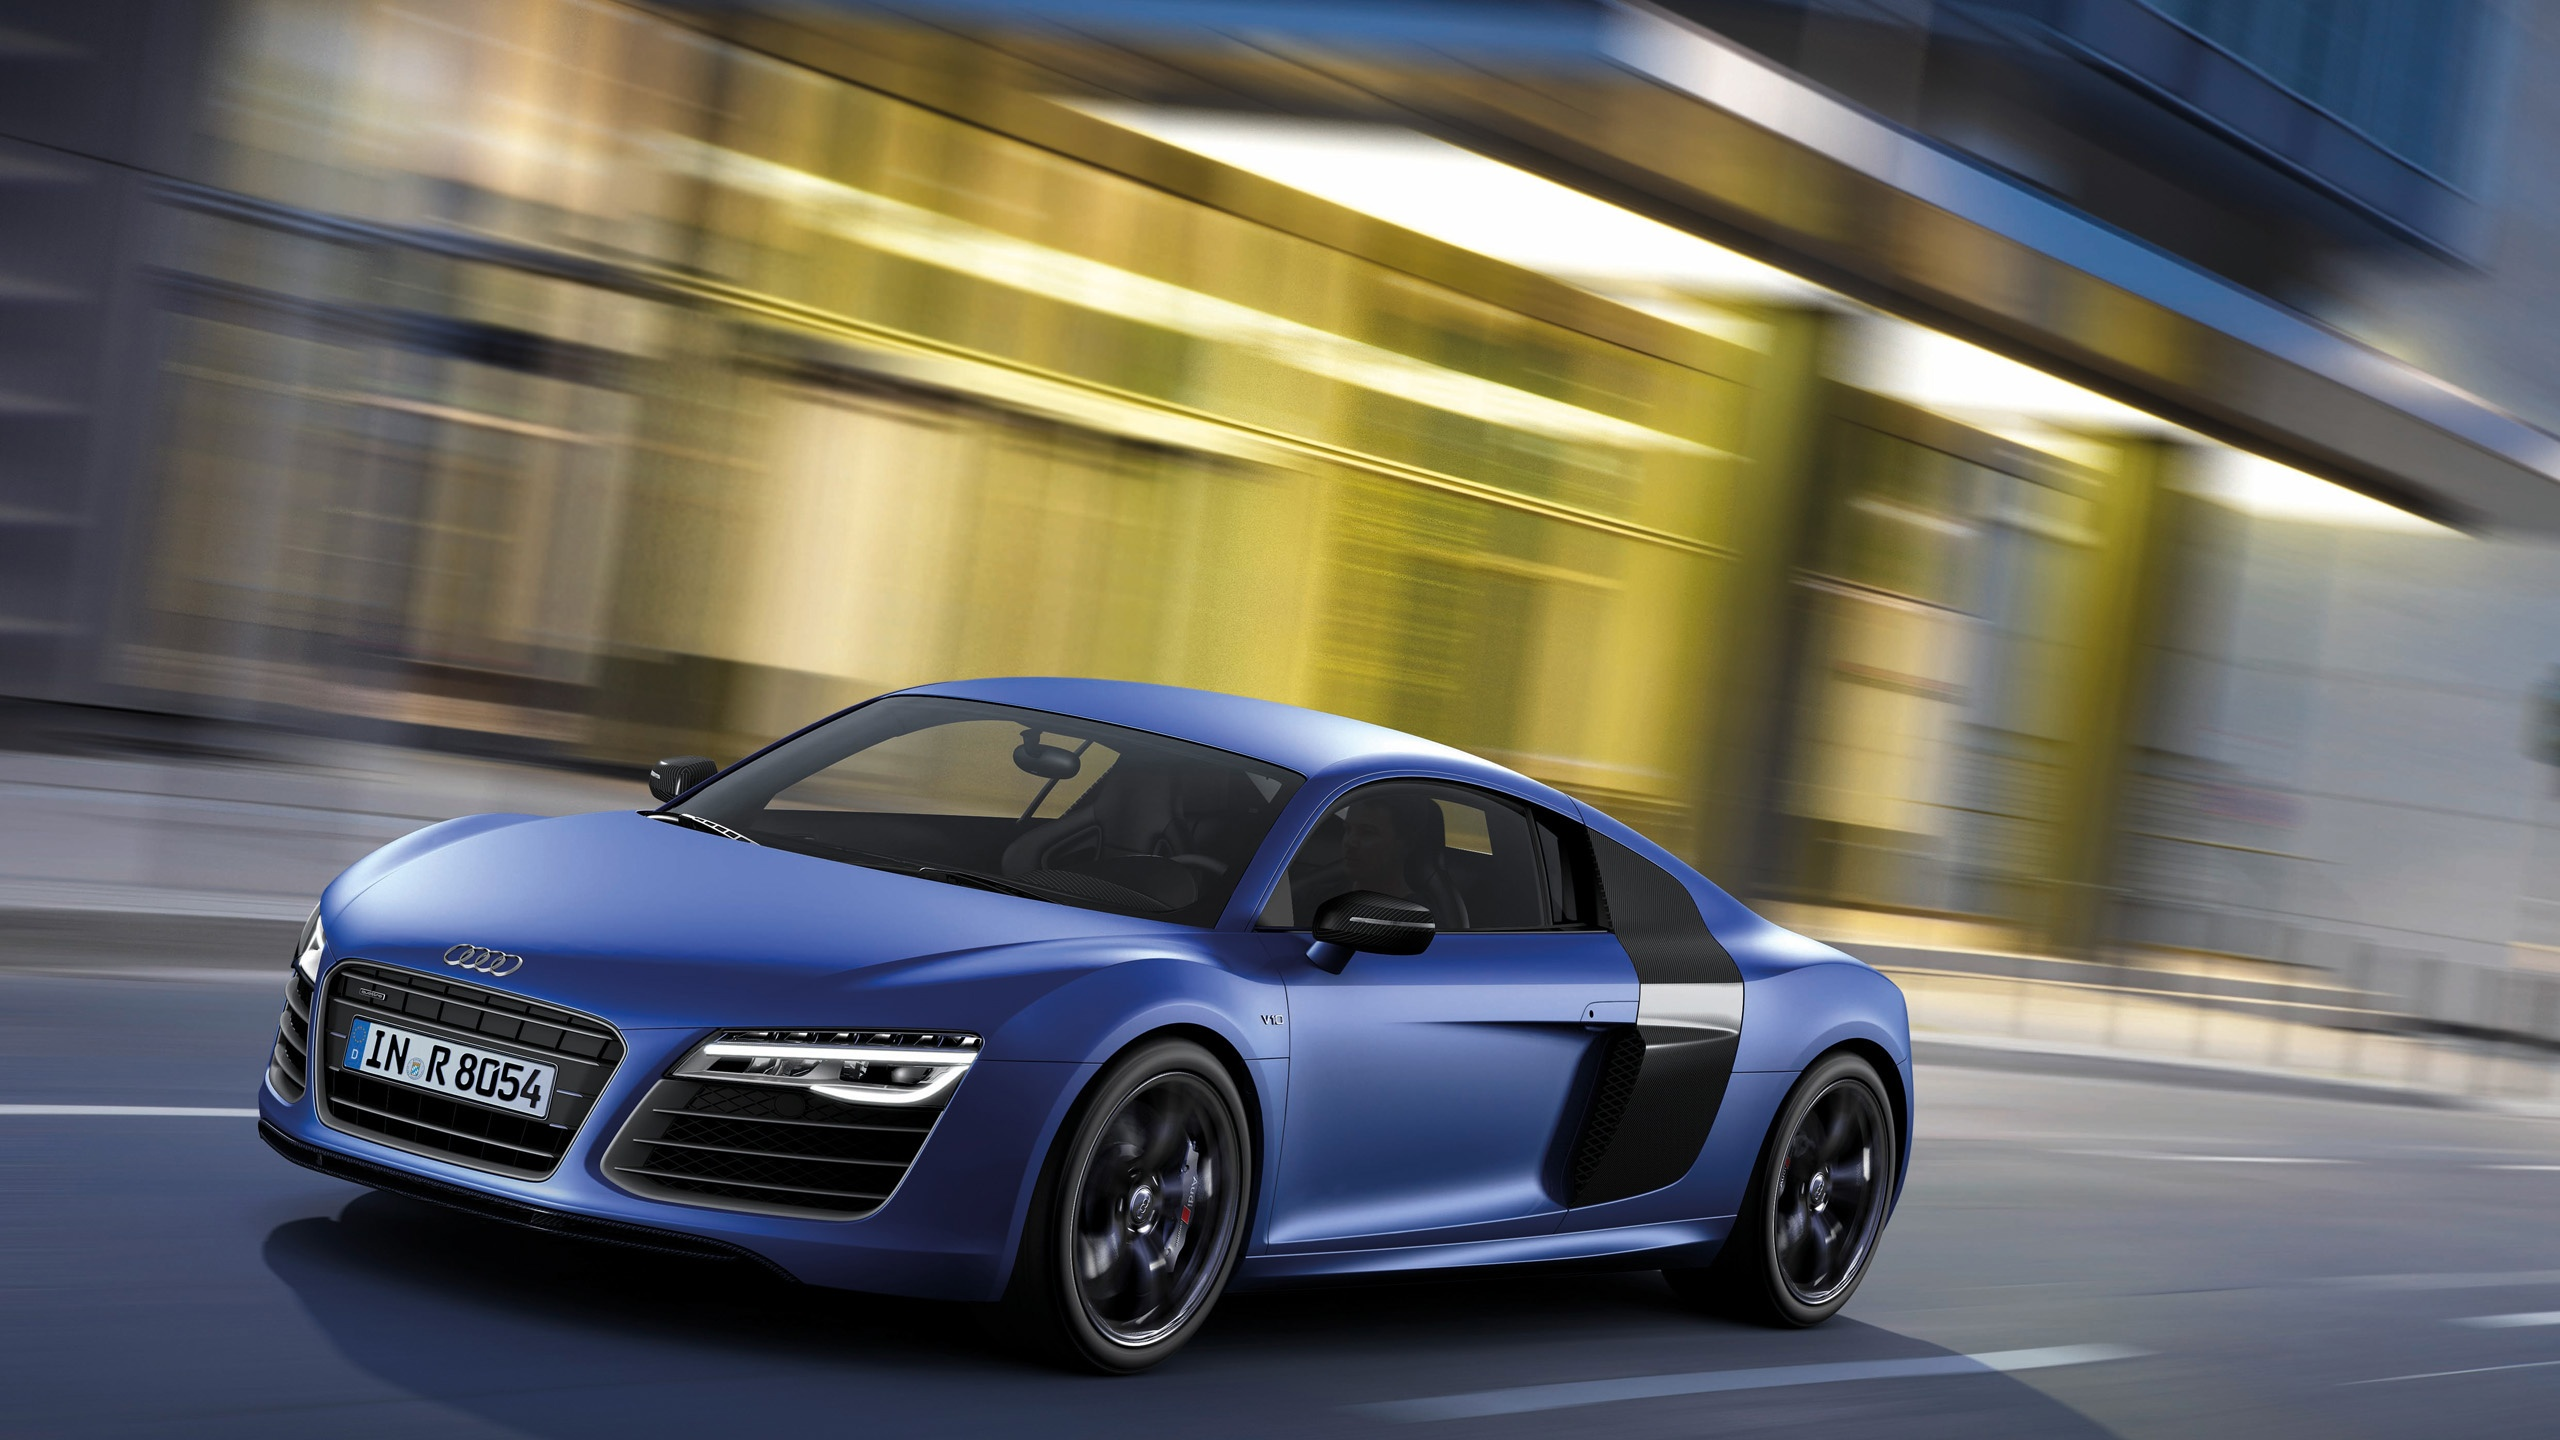 2560x1440 2013 Audi R8 V10 plus Sepang Blue Pearl Effect Side Angle ...